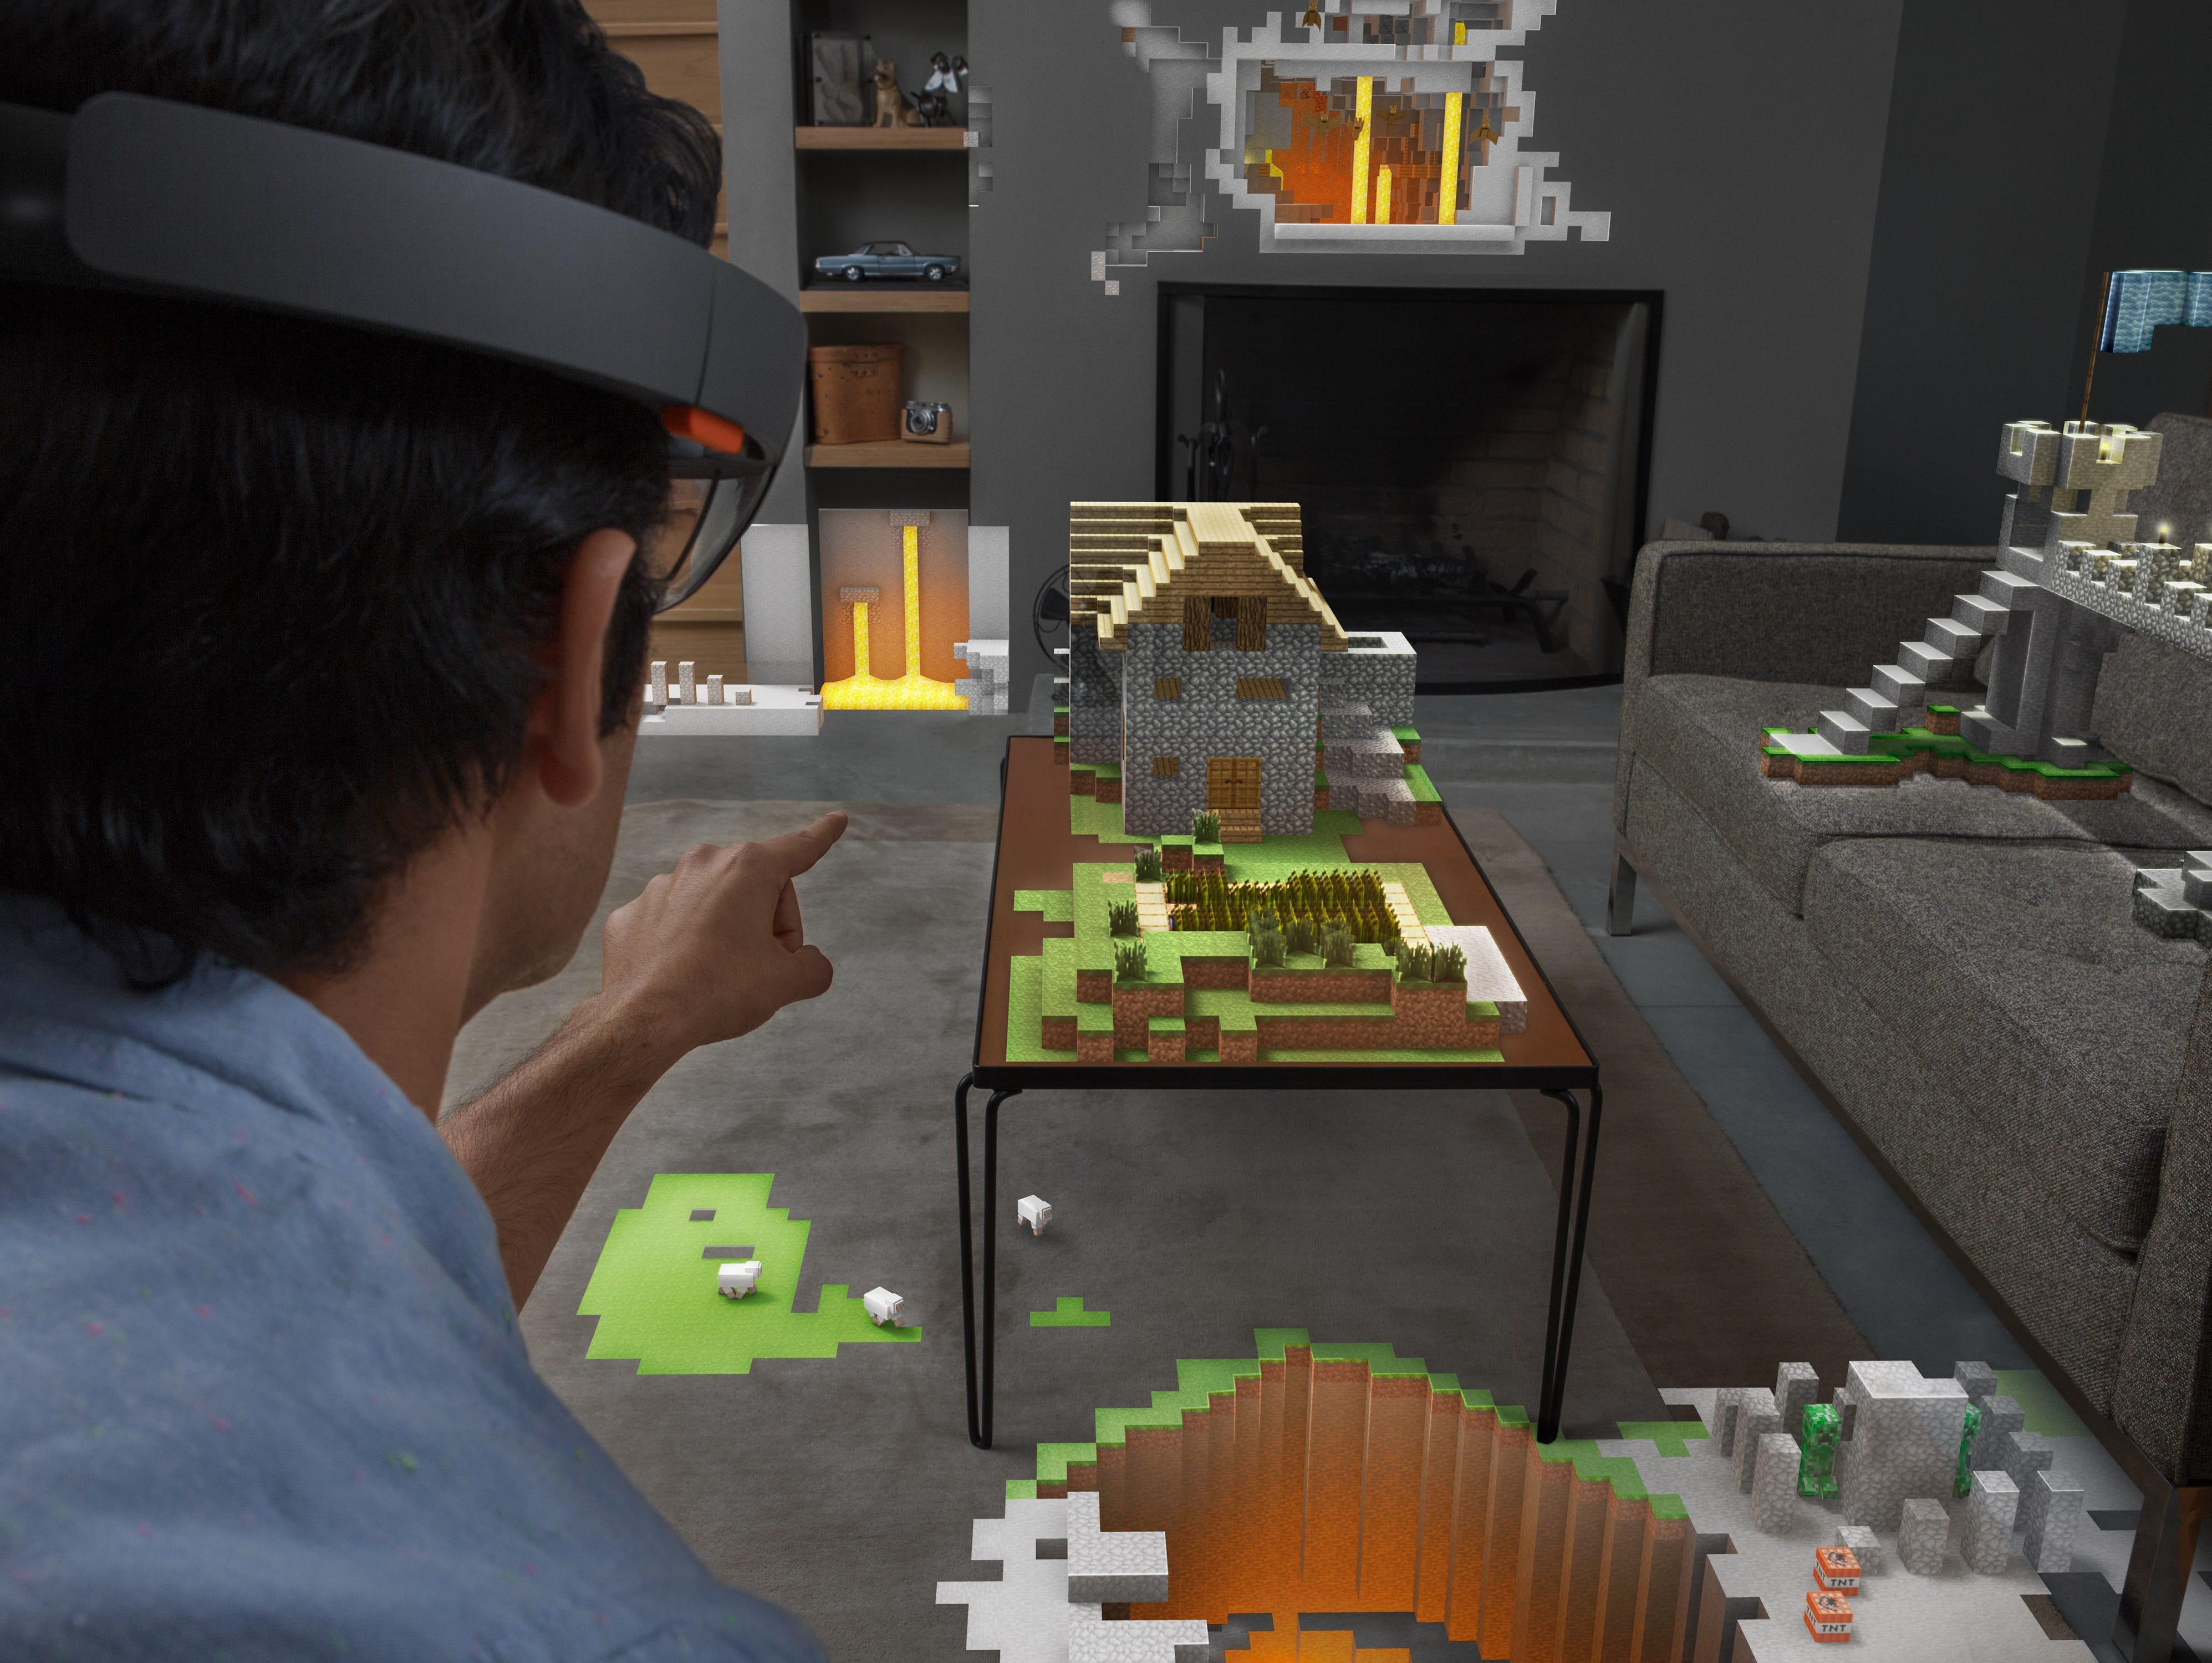 Using holographic technology to play Minecraft.